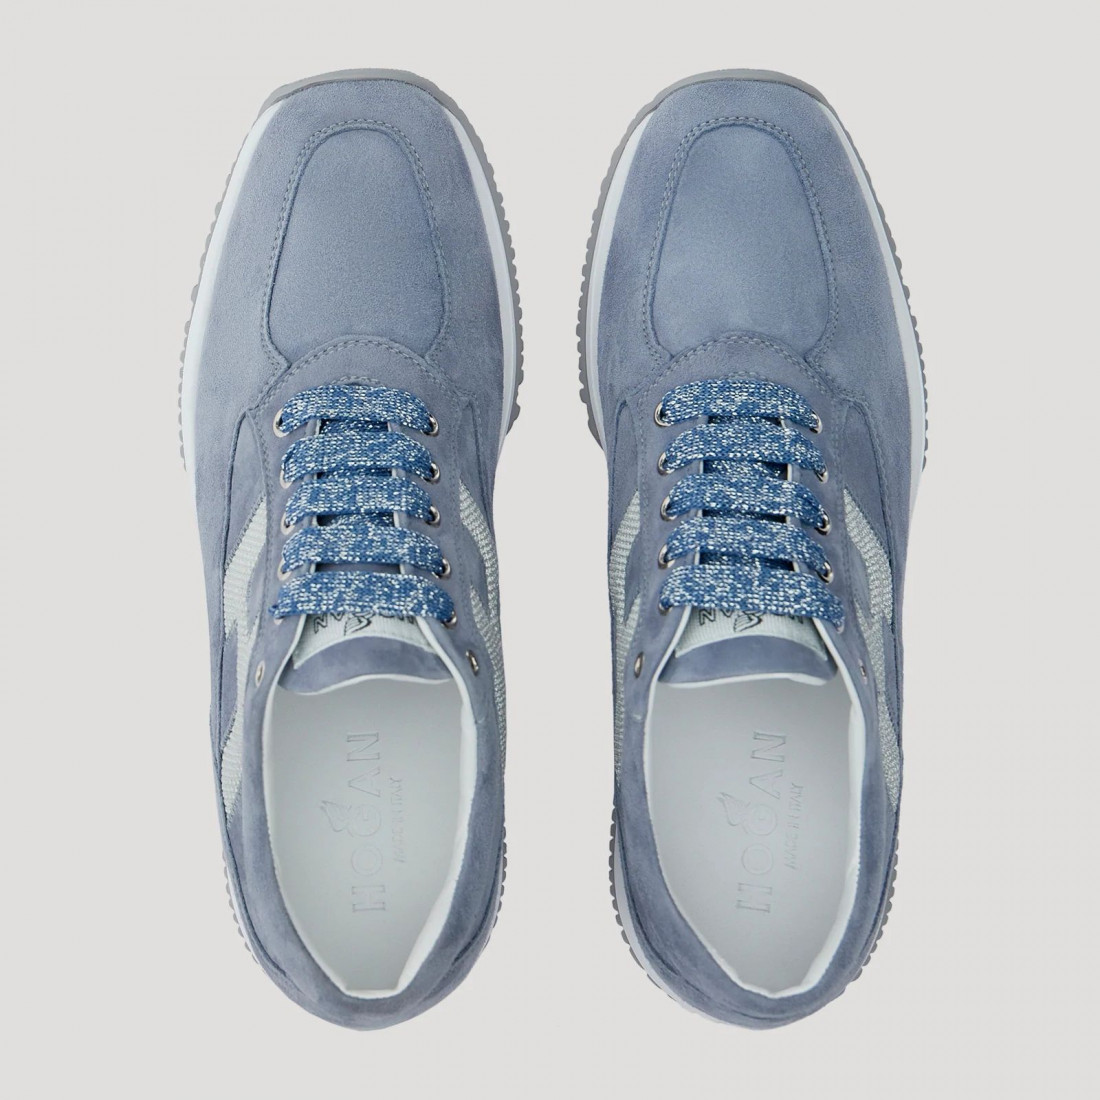 sneakers donna hogan hxw00n0s361p9c0rs1 8120